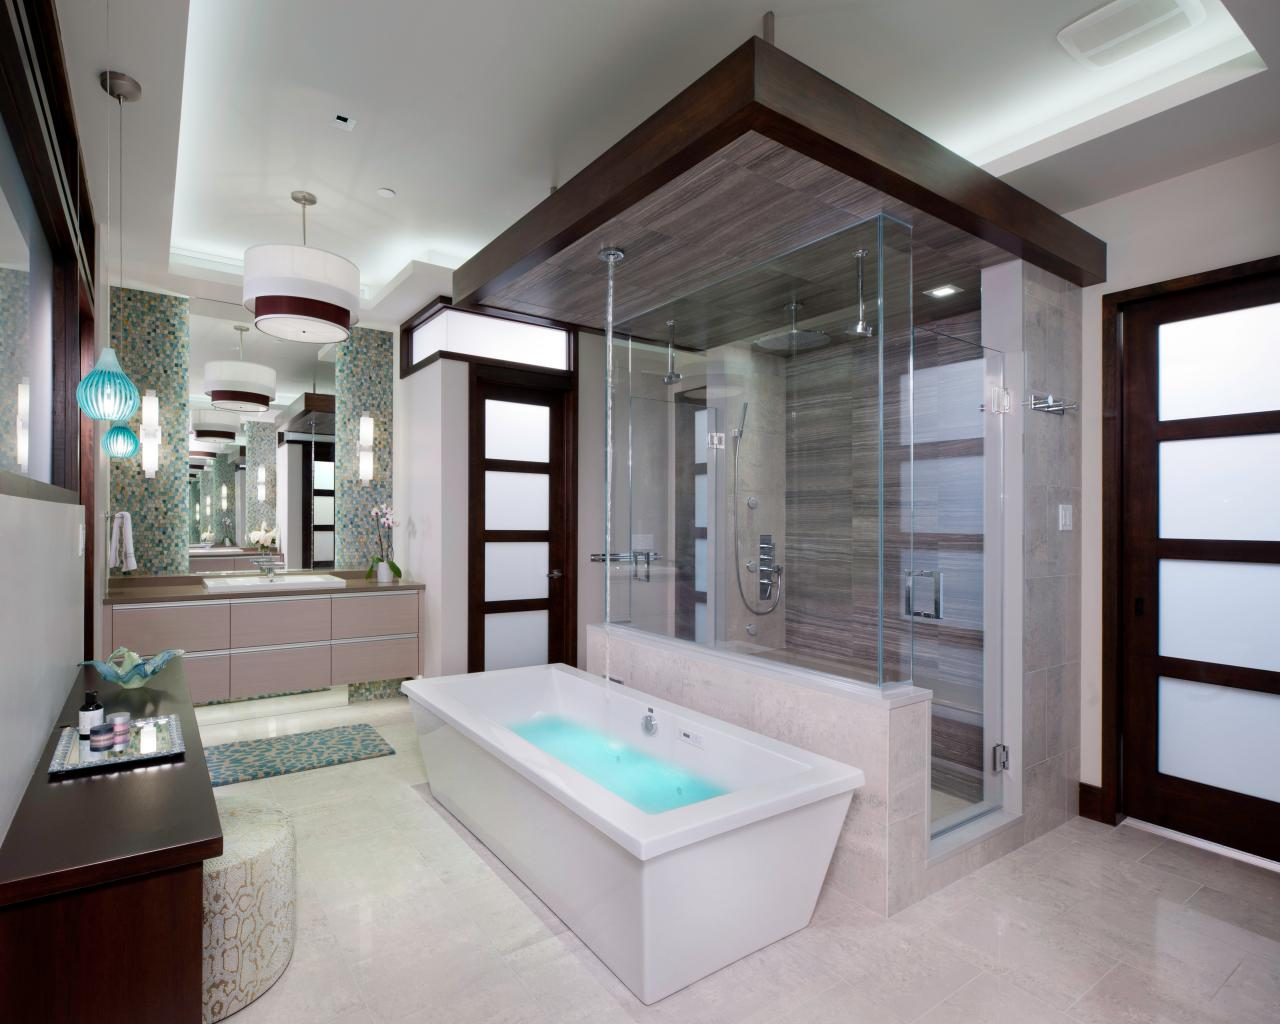 more freestanding tubs - Bathroom Designs With Freestanding Tubs